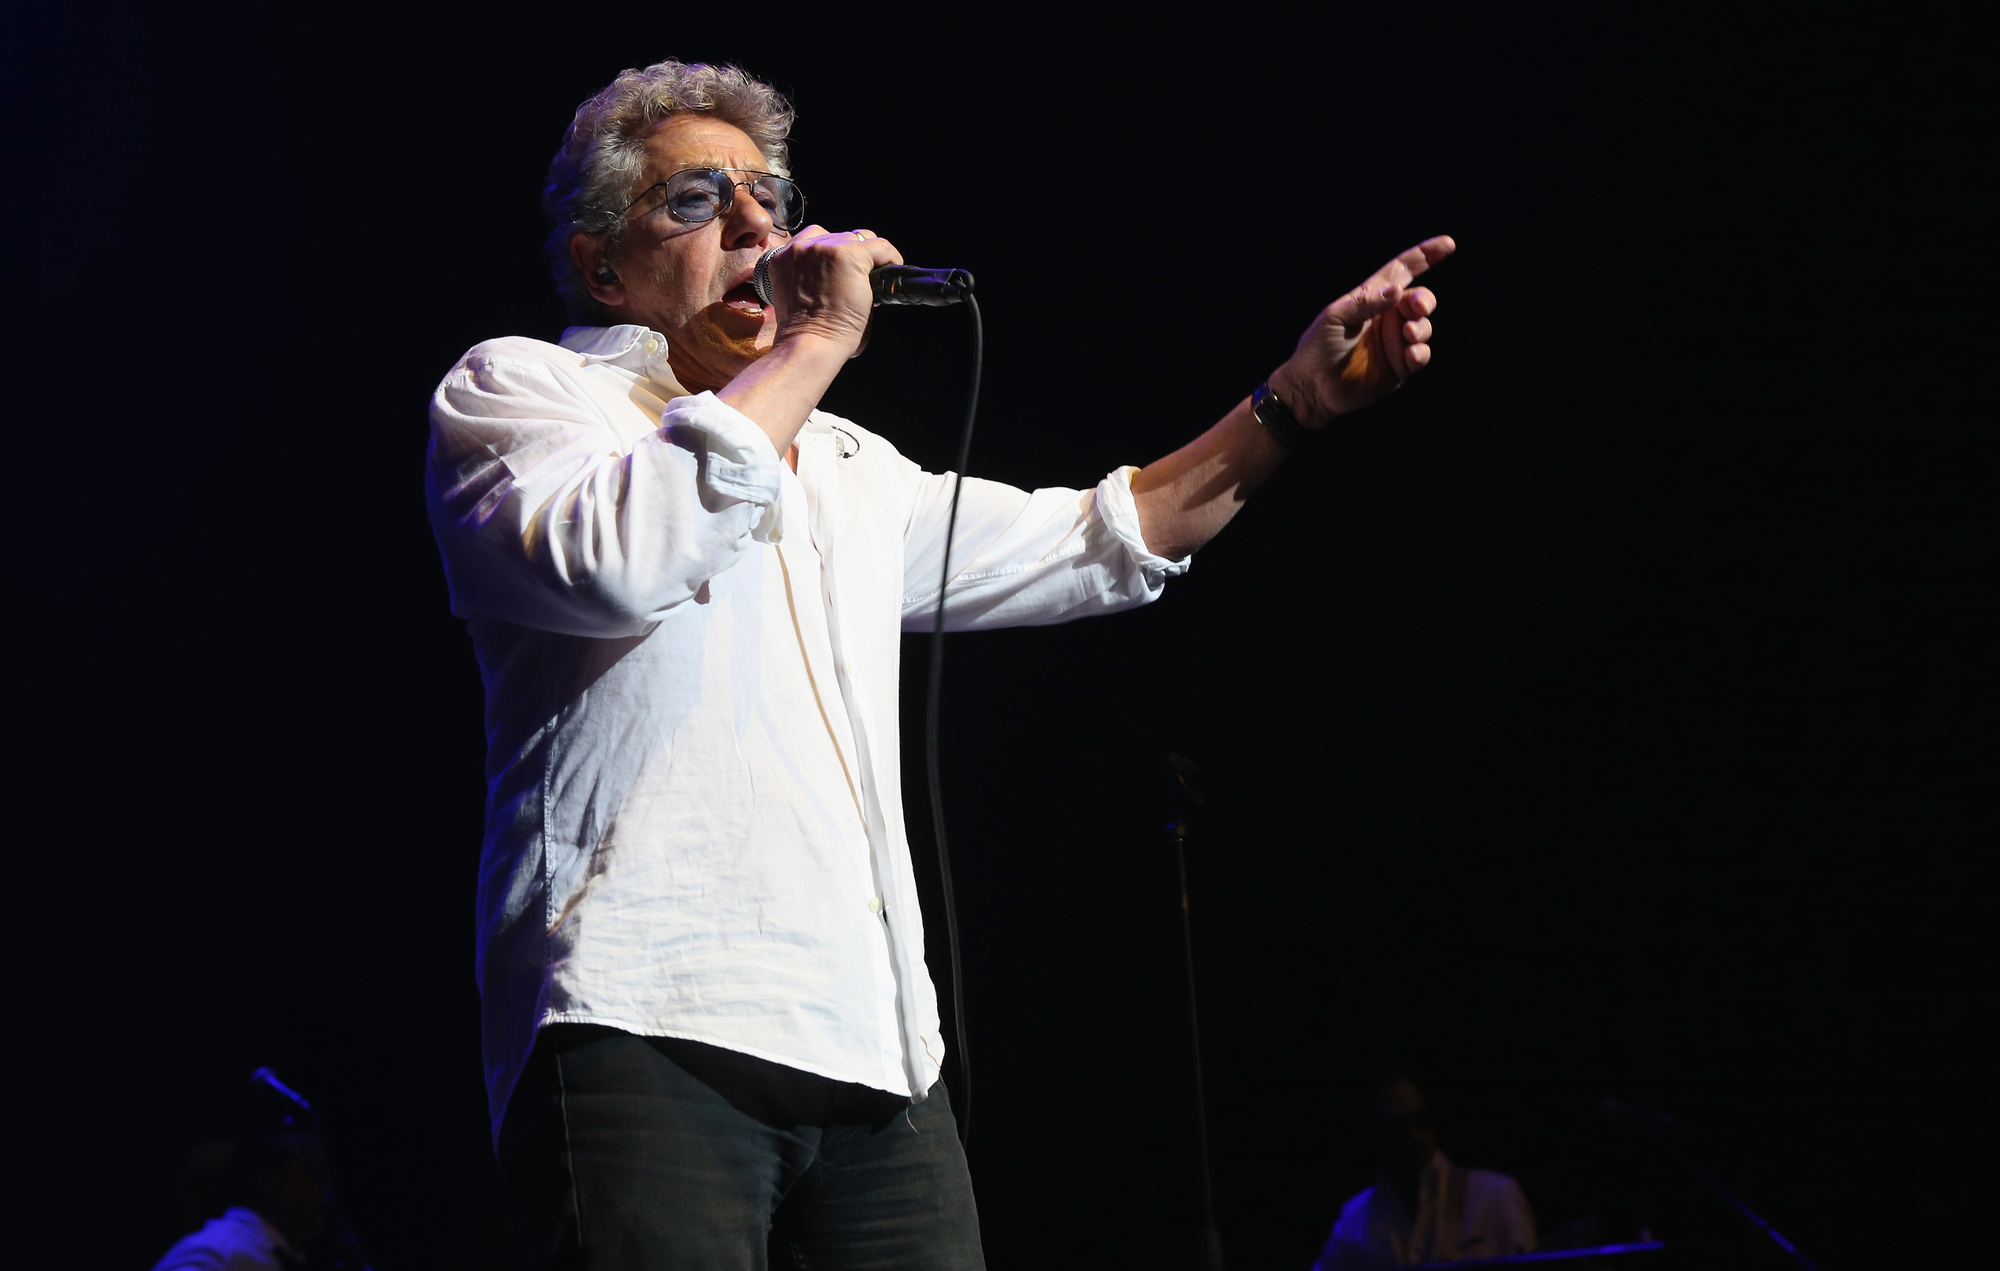 Pete Townshend wanted Roger Daltrey to rap on The Who's new album